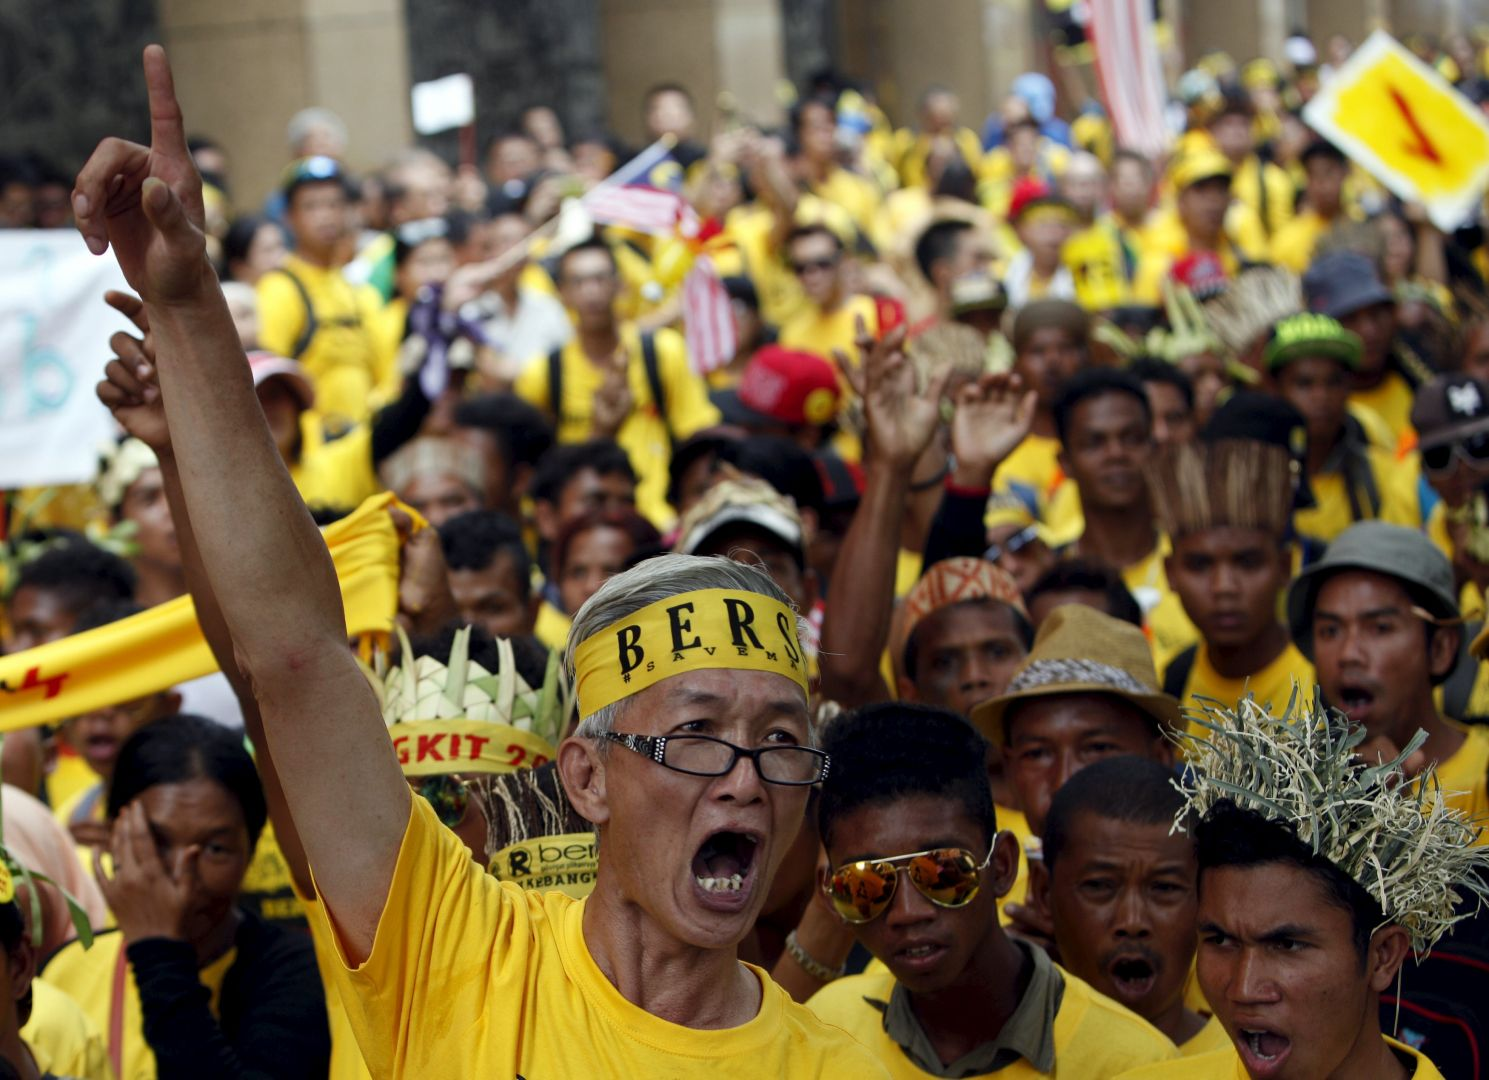 The Bersih rallies became a symbol of the people's fight for a better democracy.